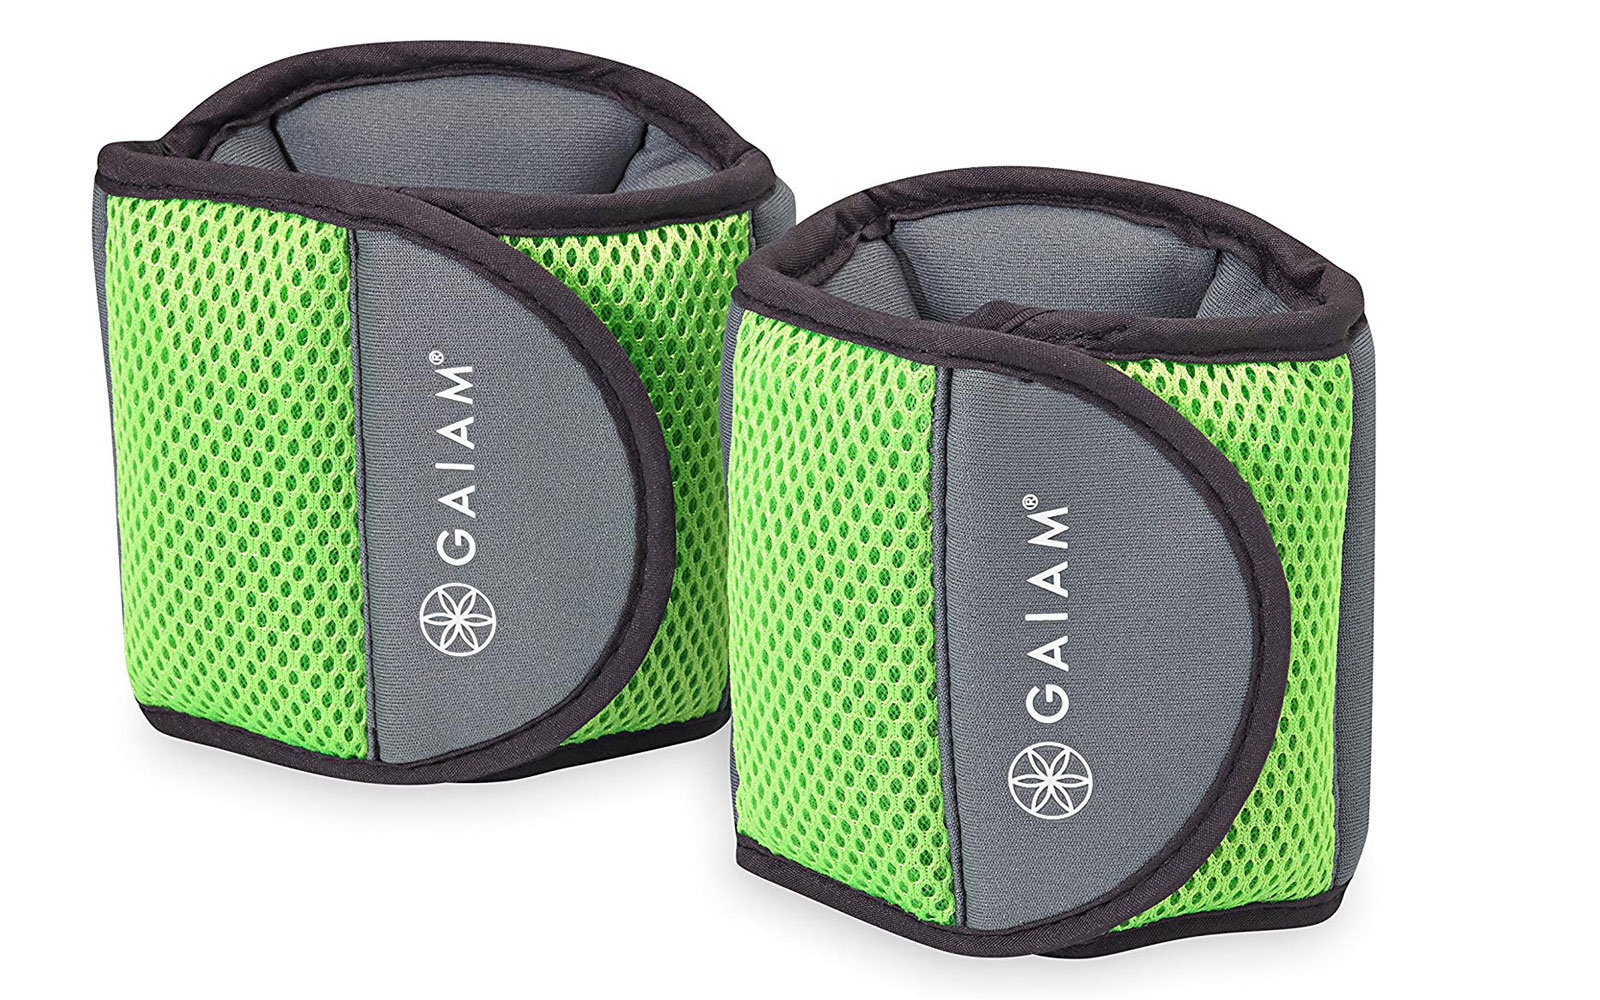 Grey and green ankle weights